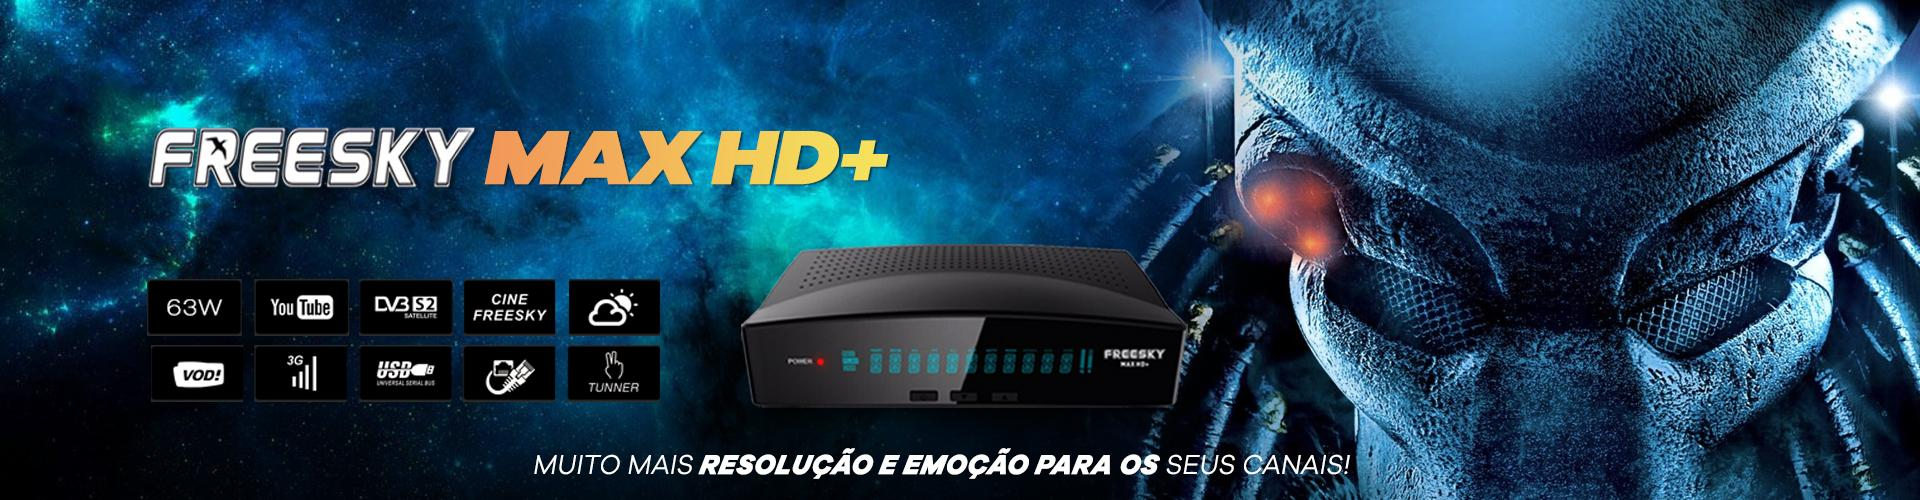 Freesky HD+